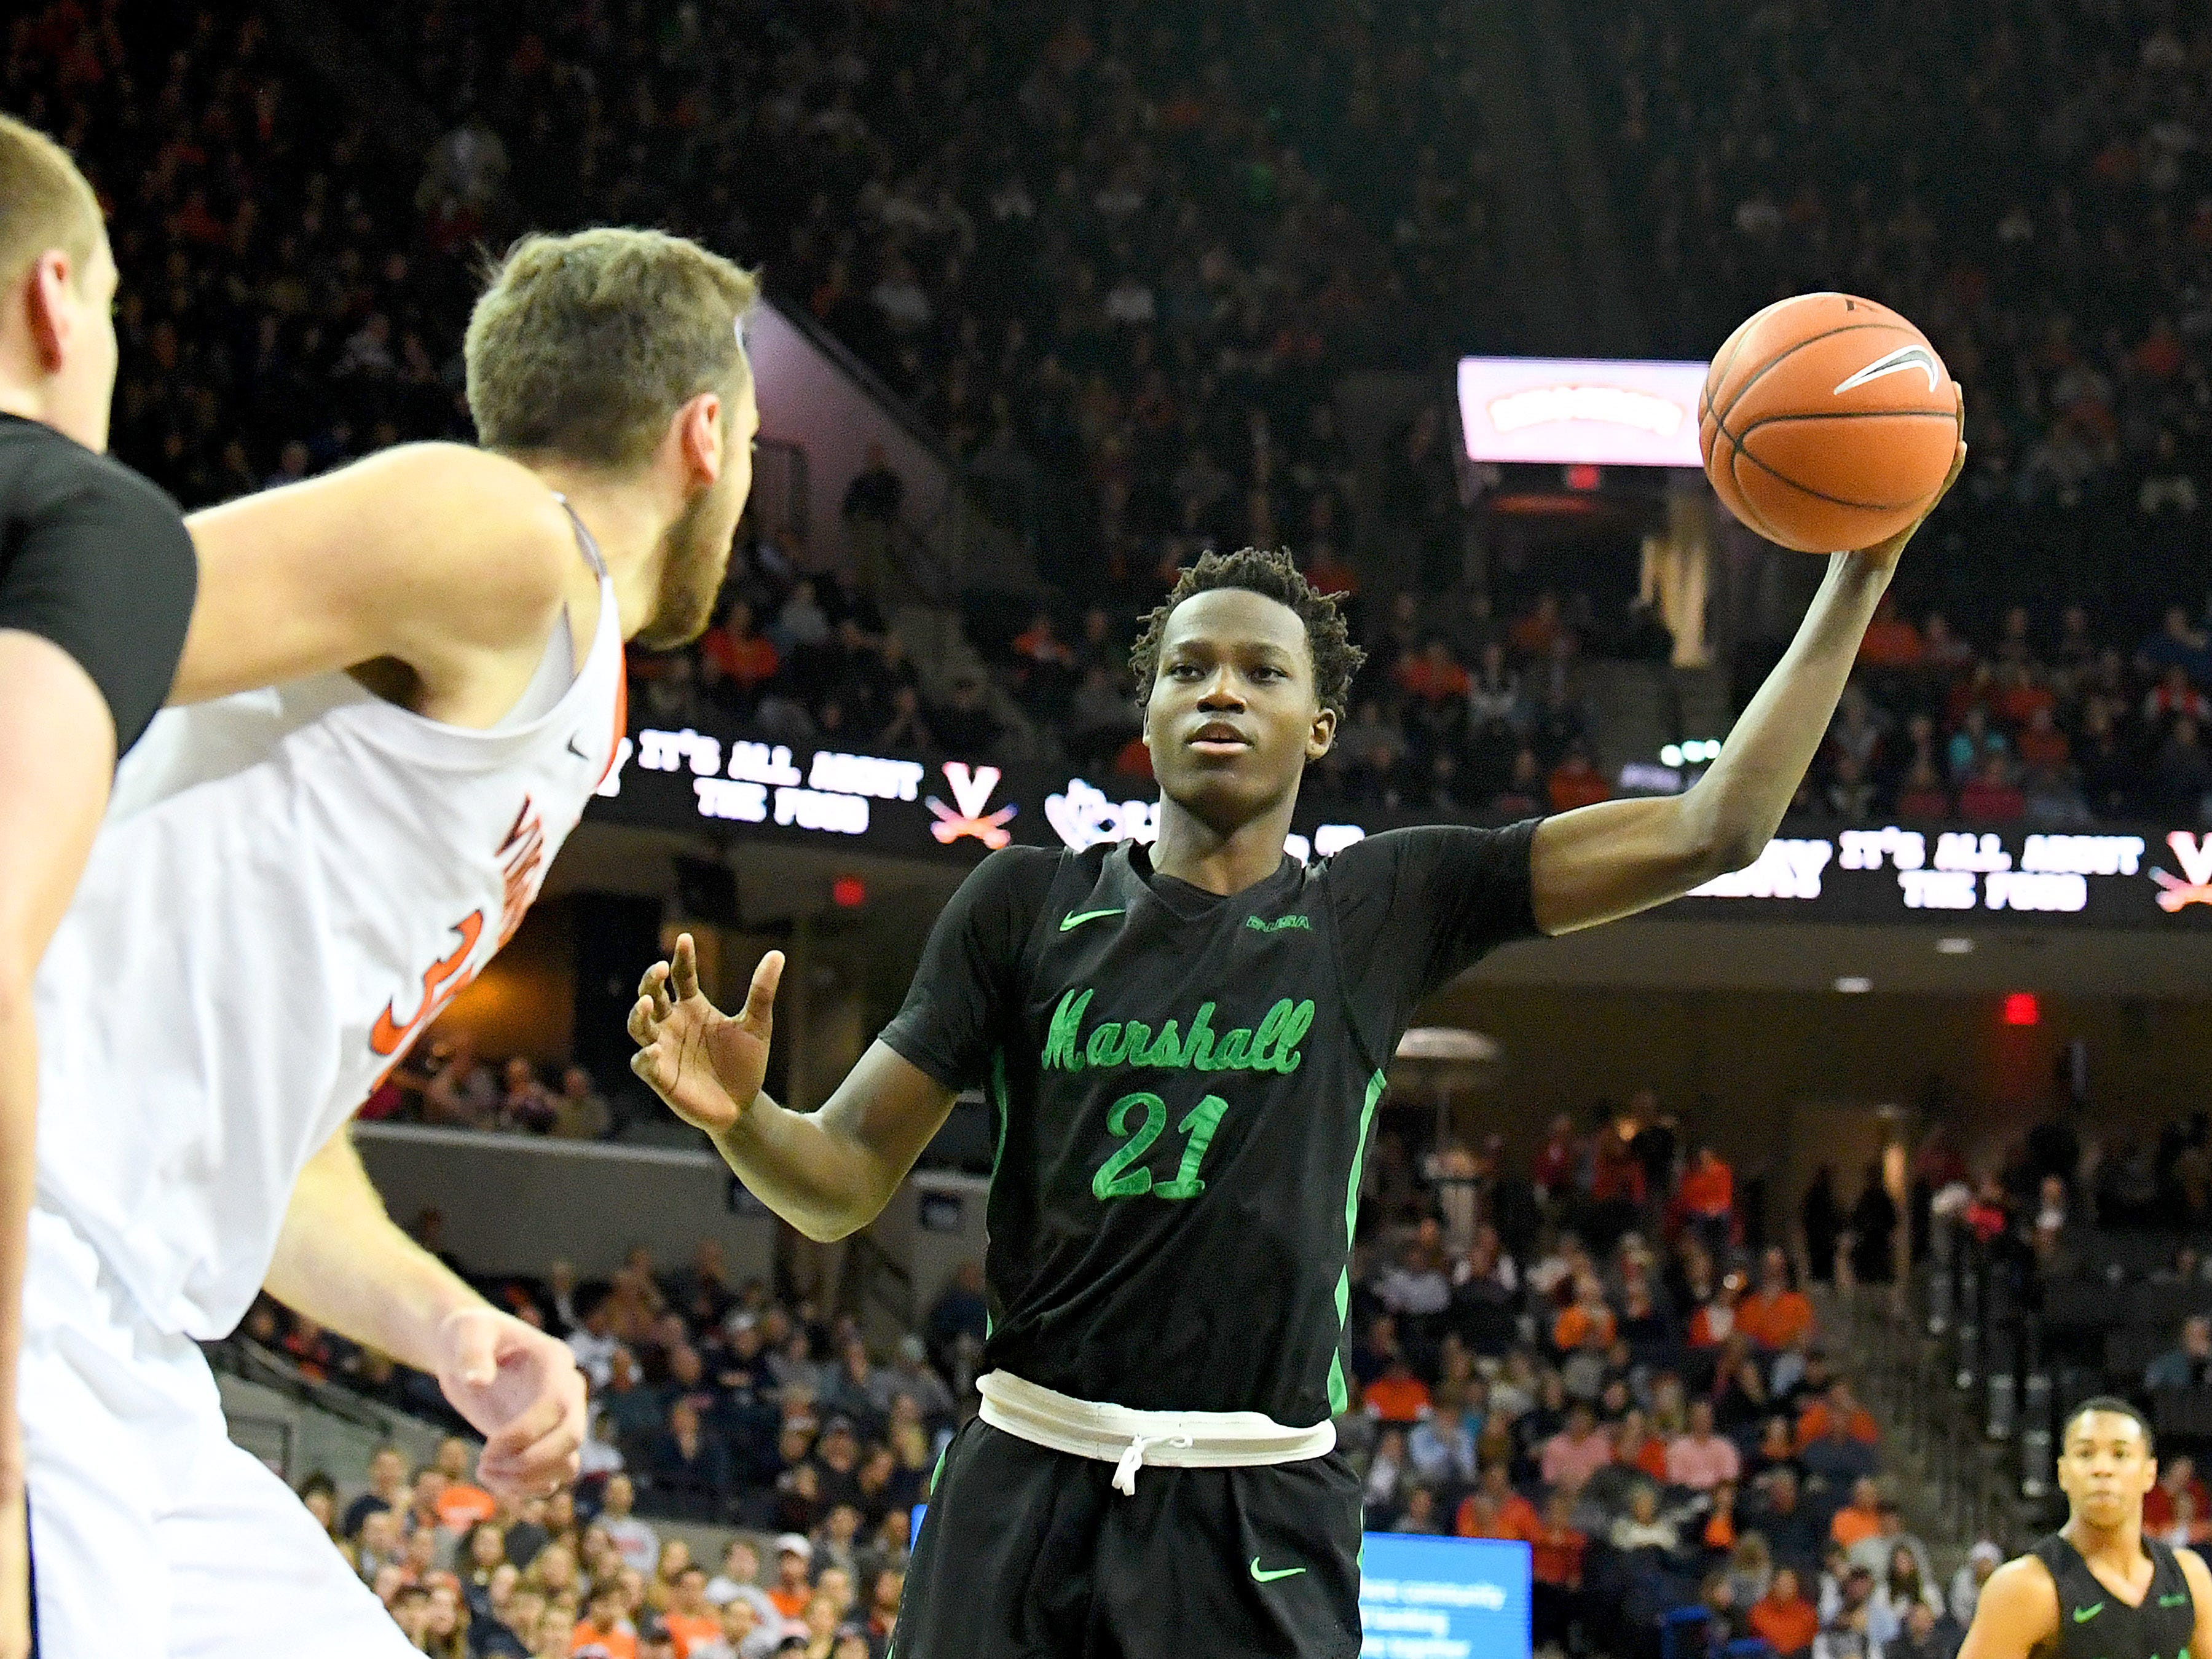 Marshall's Darius George, former R.E. Lee star, looks to pass the ball to a teammate during their game against University of Virginia, played at the John Paul Jones Arena on Dec. 31, 2016.